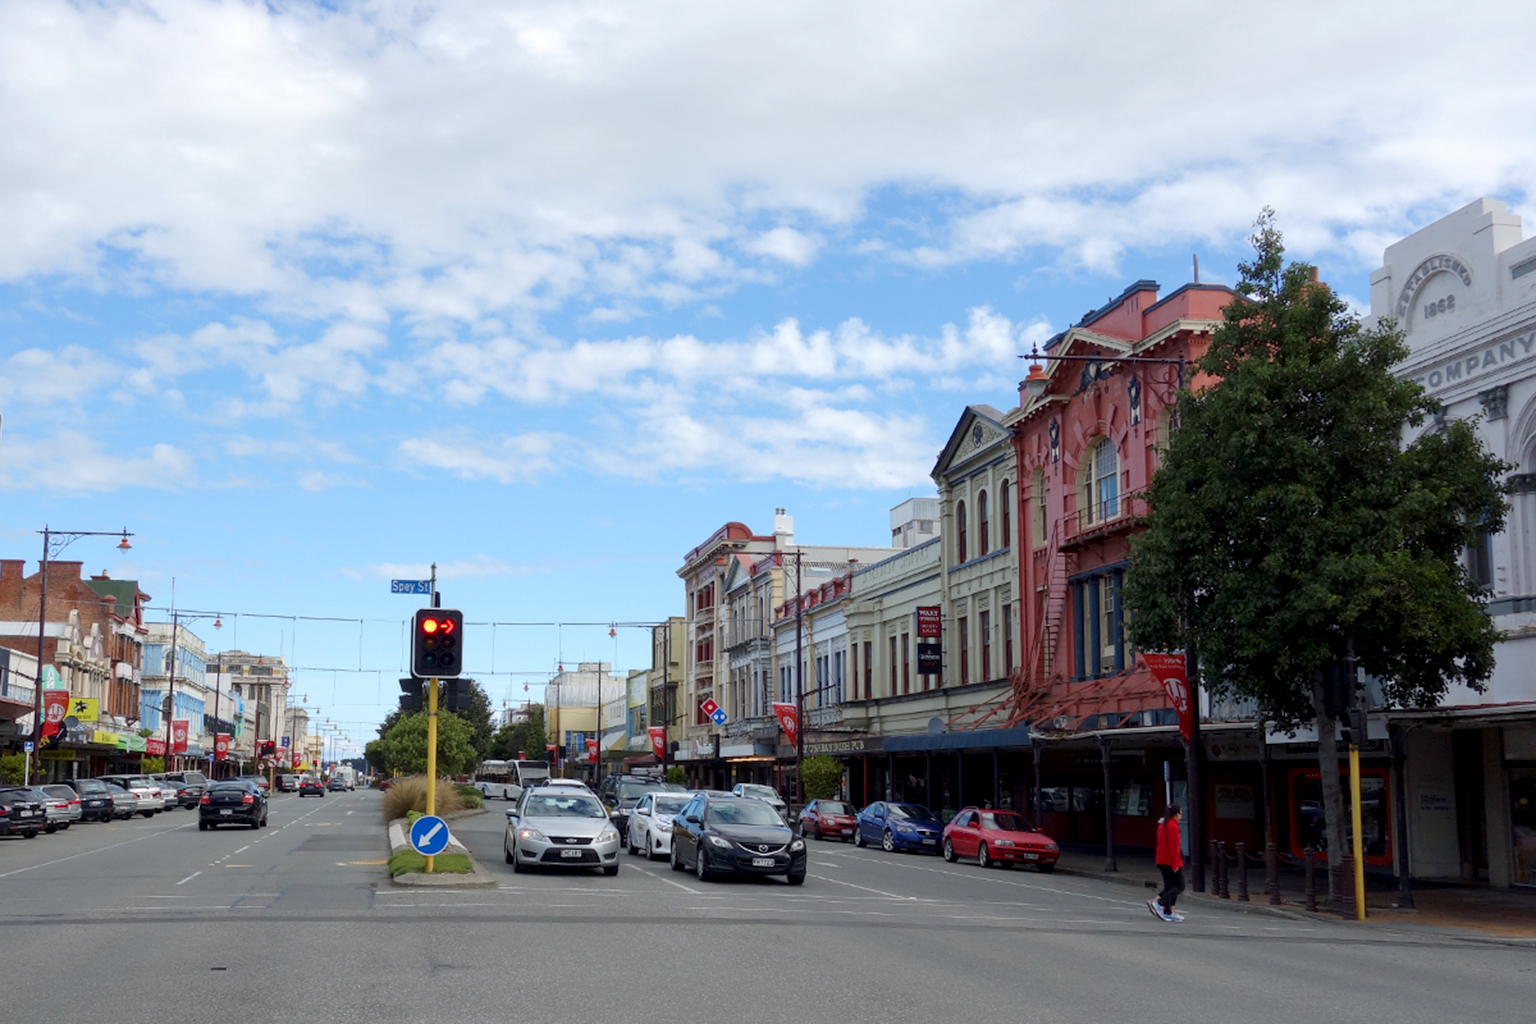 Downtown Invercargill NZ